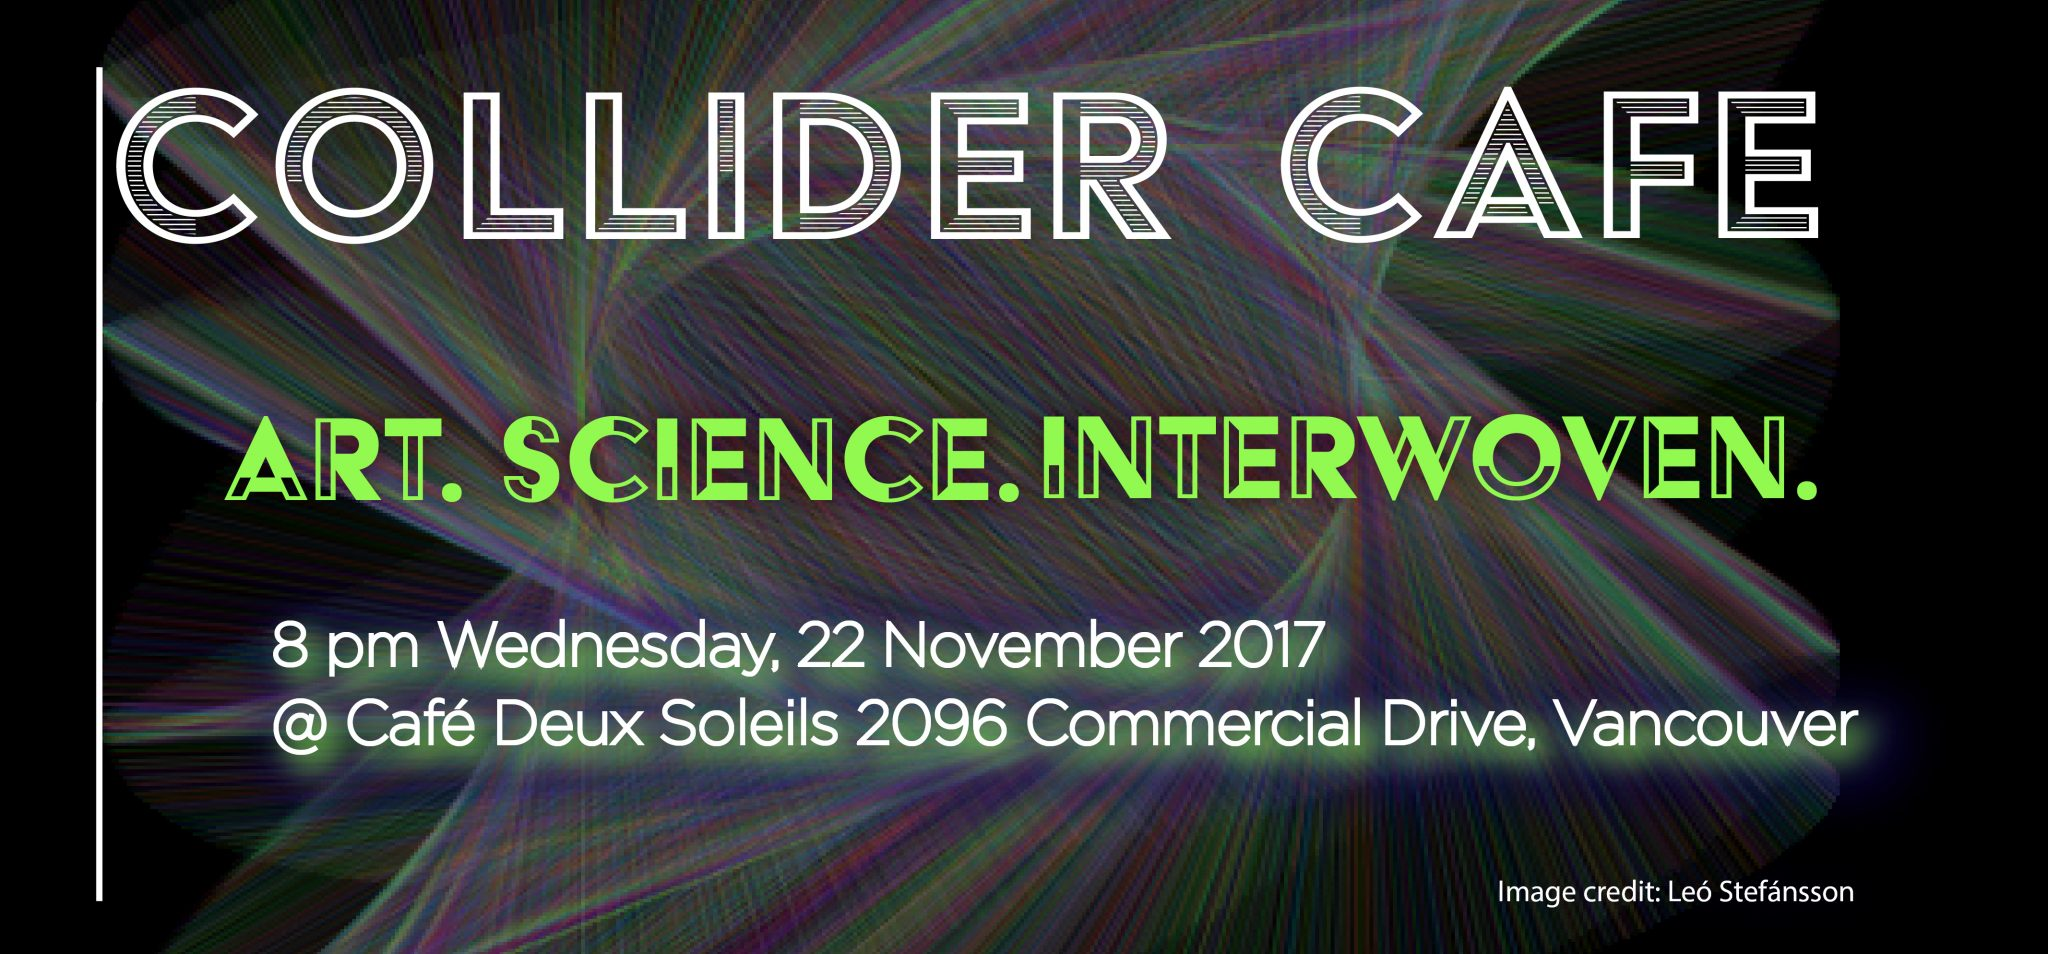 Collider Cafe: Art. Science. Interwoven.